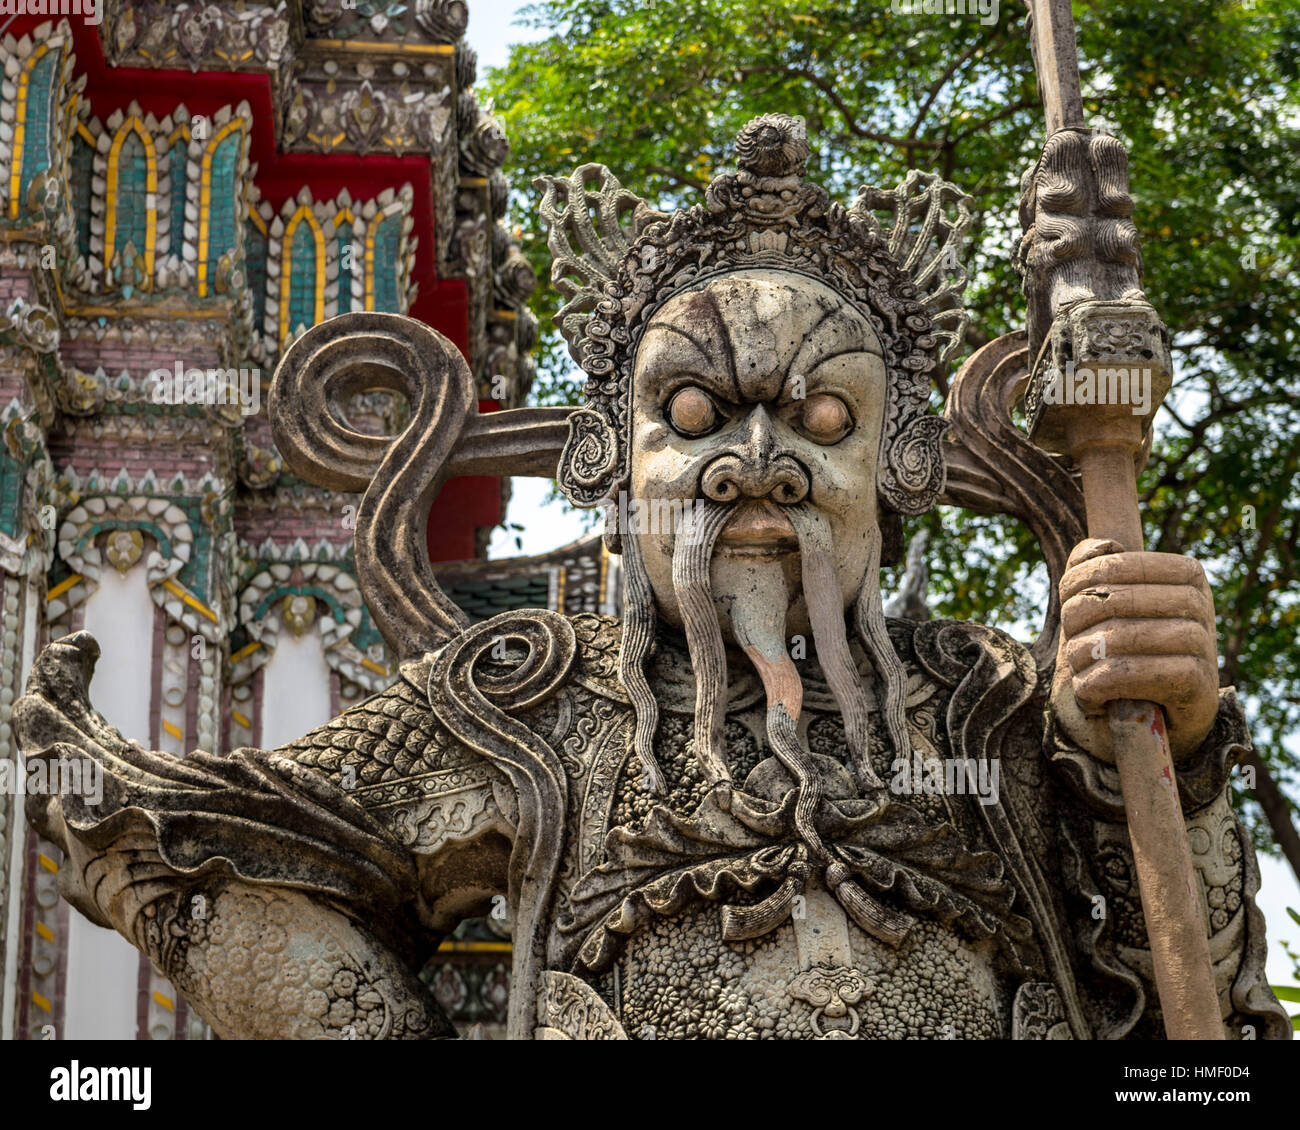 Chinese guardian statue at one of the gates of Wat Pho, in Bangkok (Thailand) - Stock Image